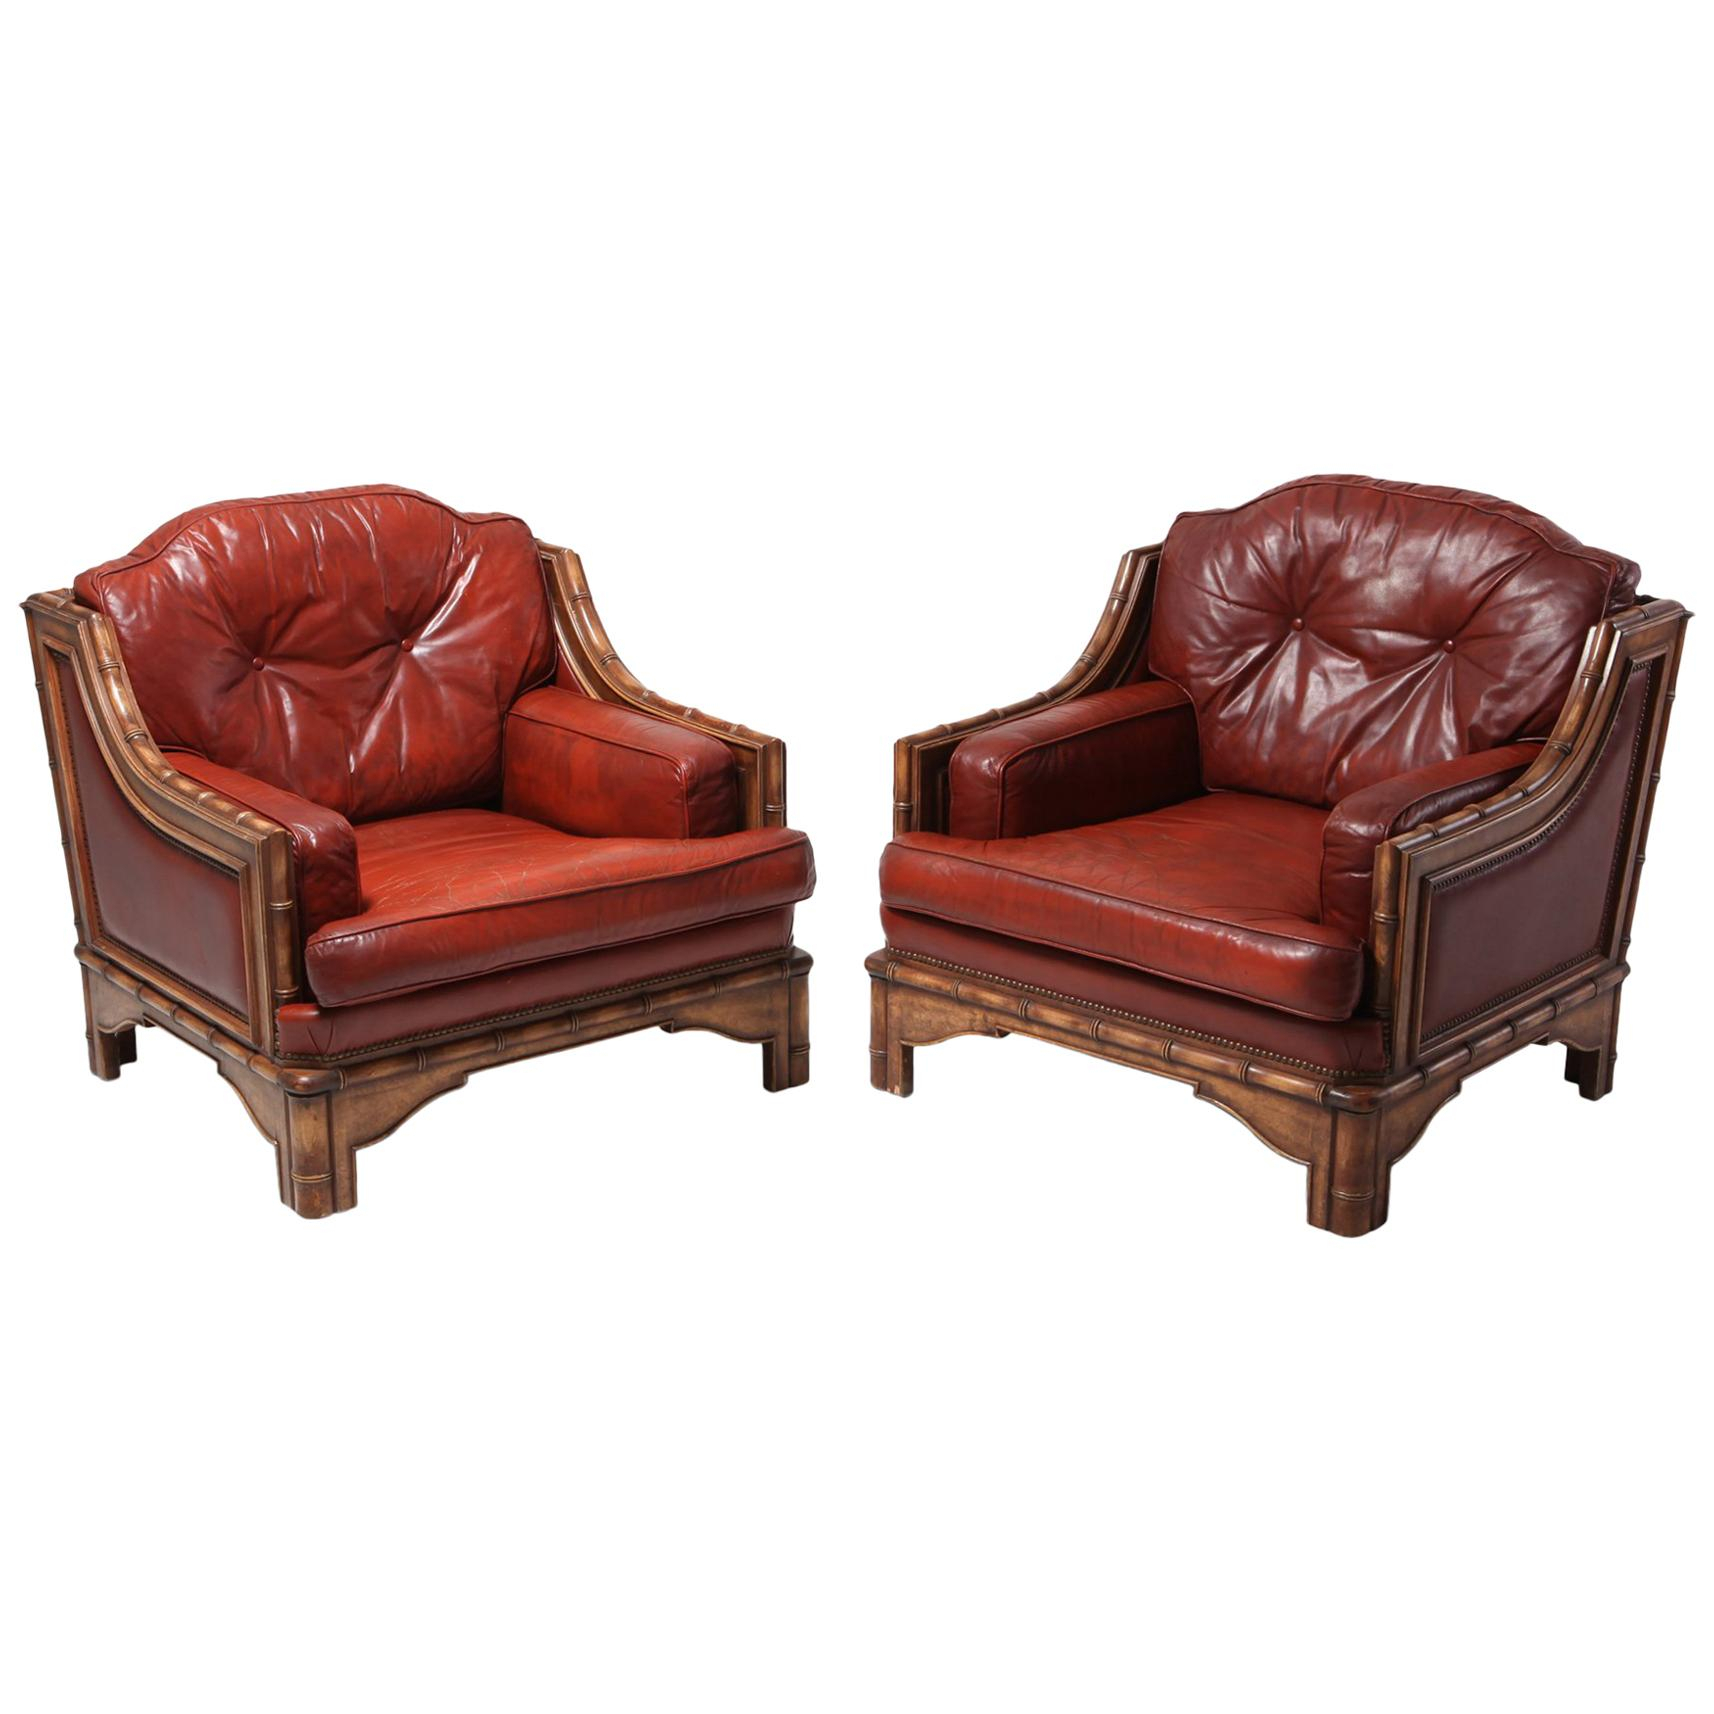 Antique And Vintage Club Chairs – 2,919 For Sale At 1Stdibs Regarding Gina Blue Leather Sofa Chairs (Image 3 of 20)